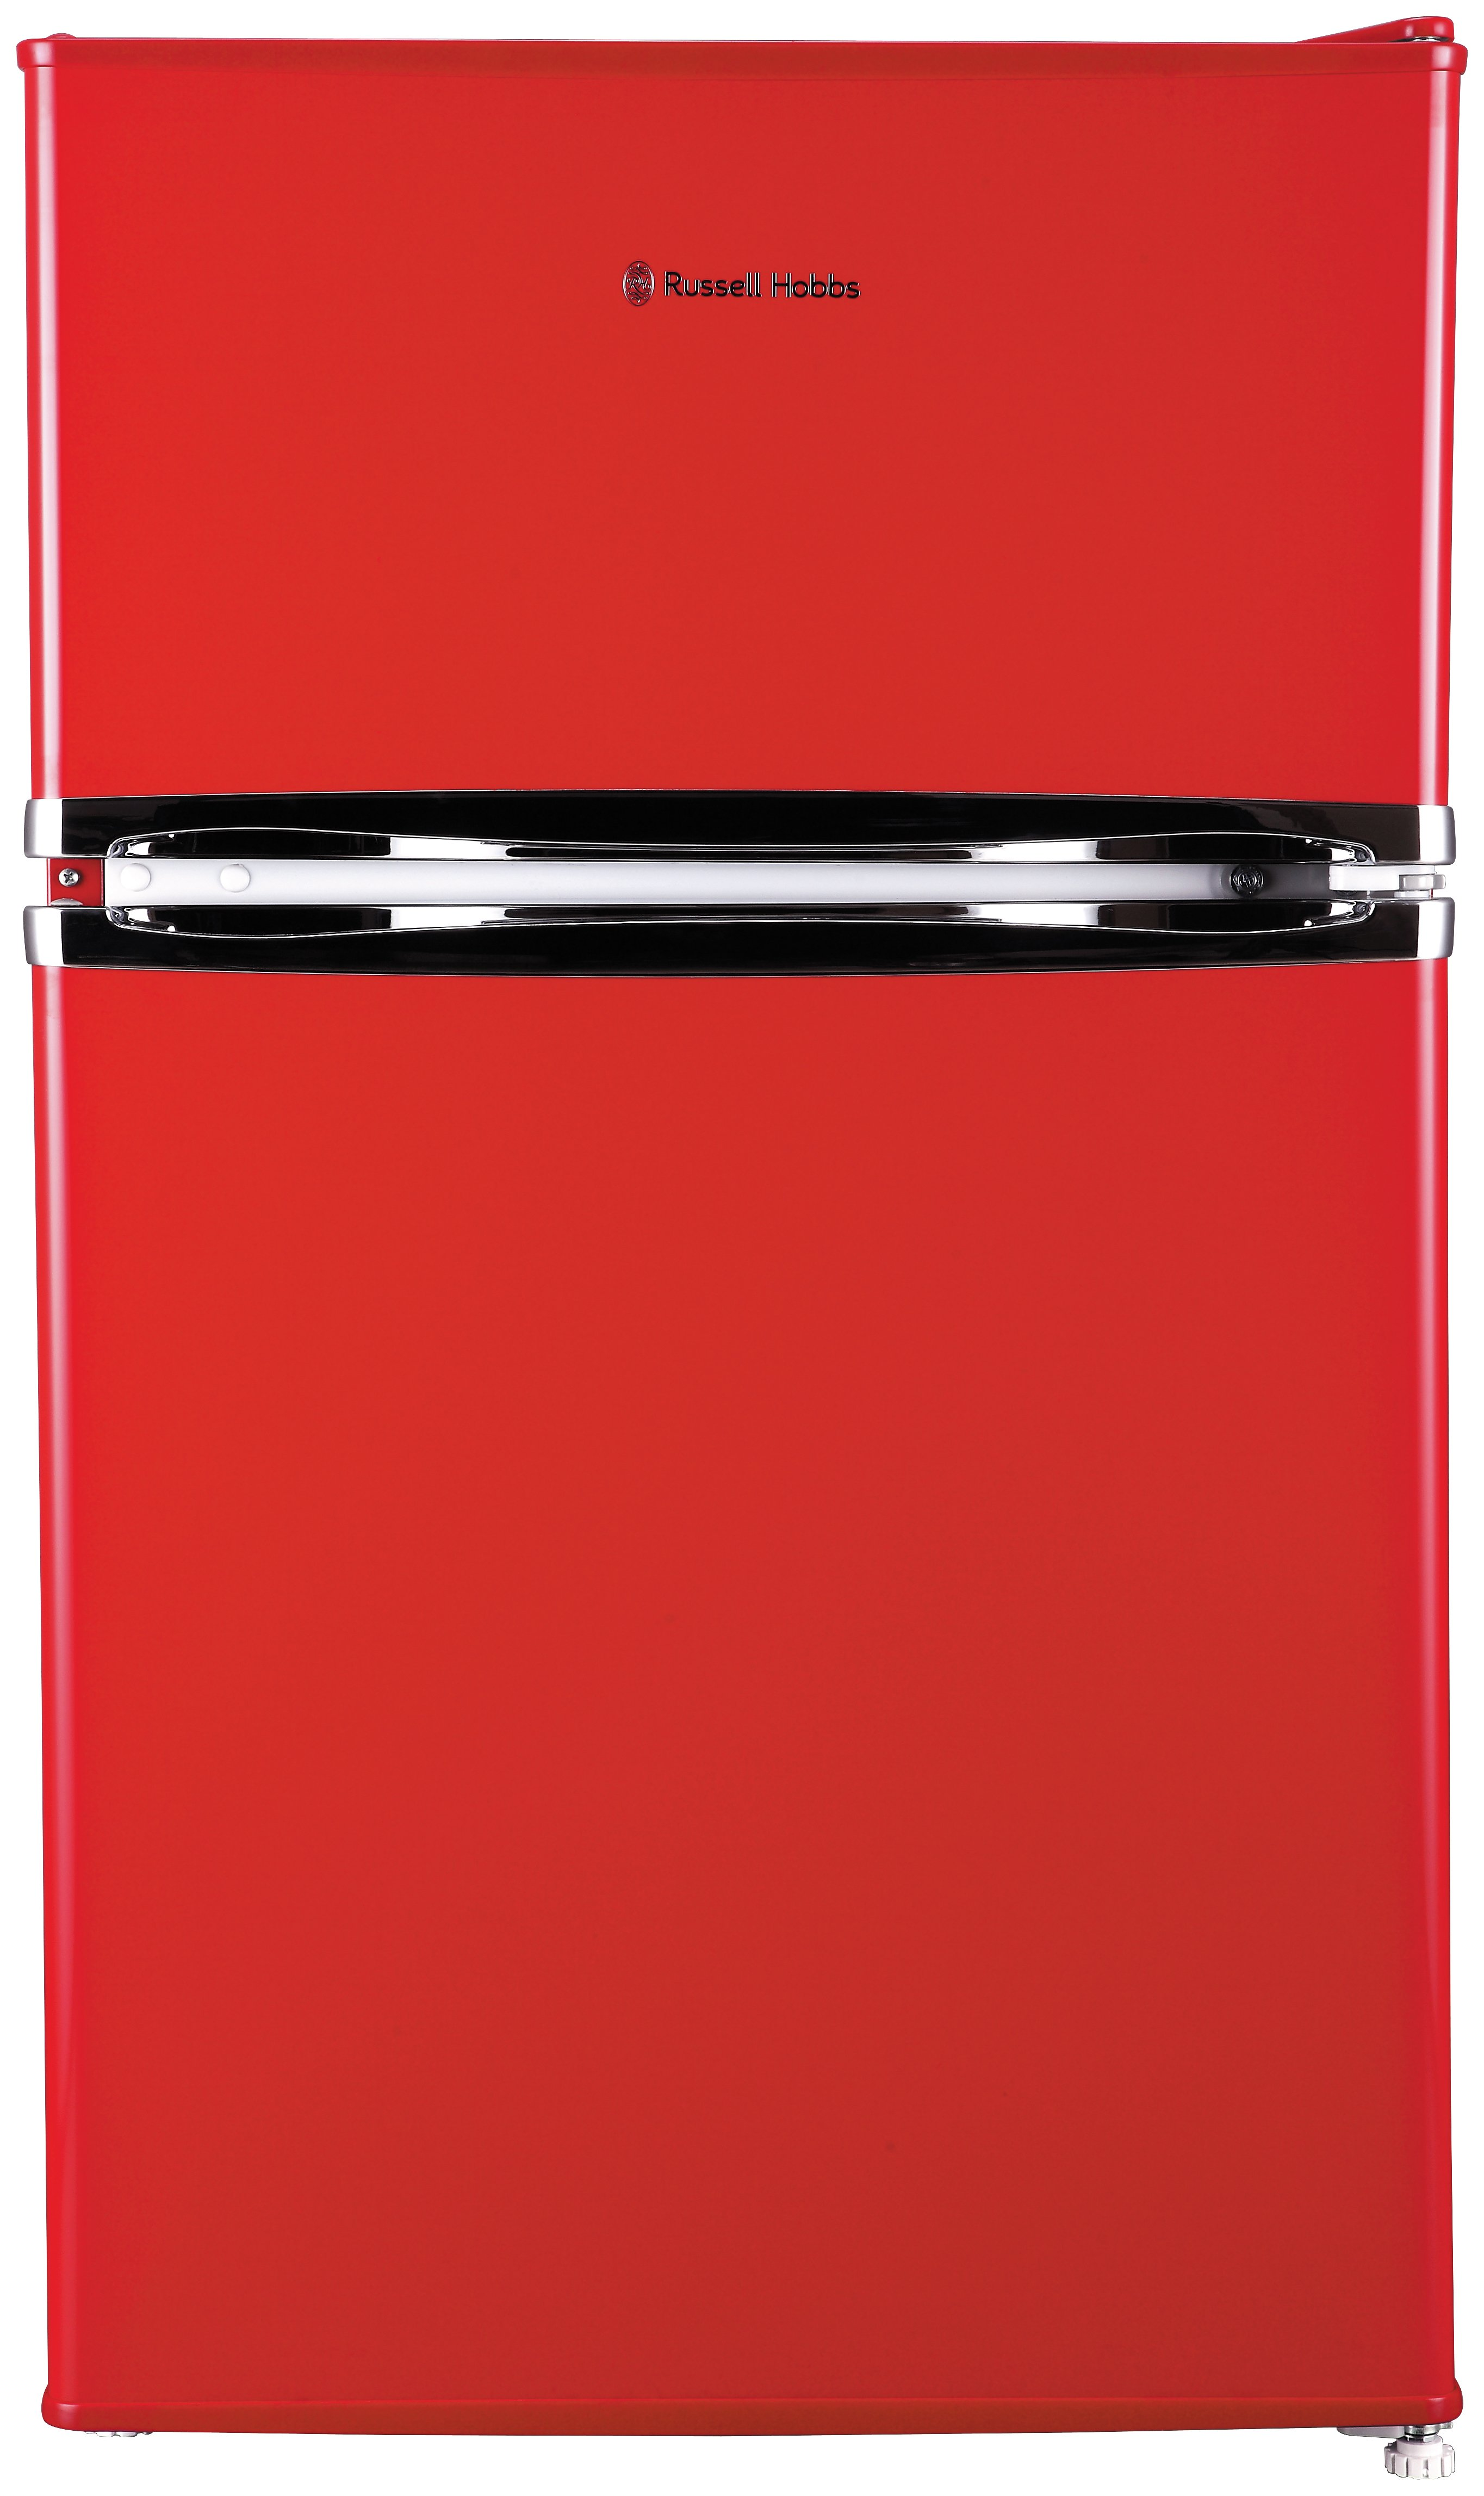 Russell Hobbs RHUCFF50R Under Counter Fridge Freezer - Red Best Price, Cheapest Prices